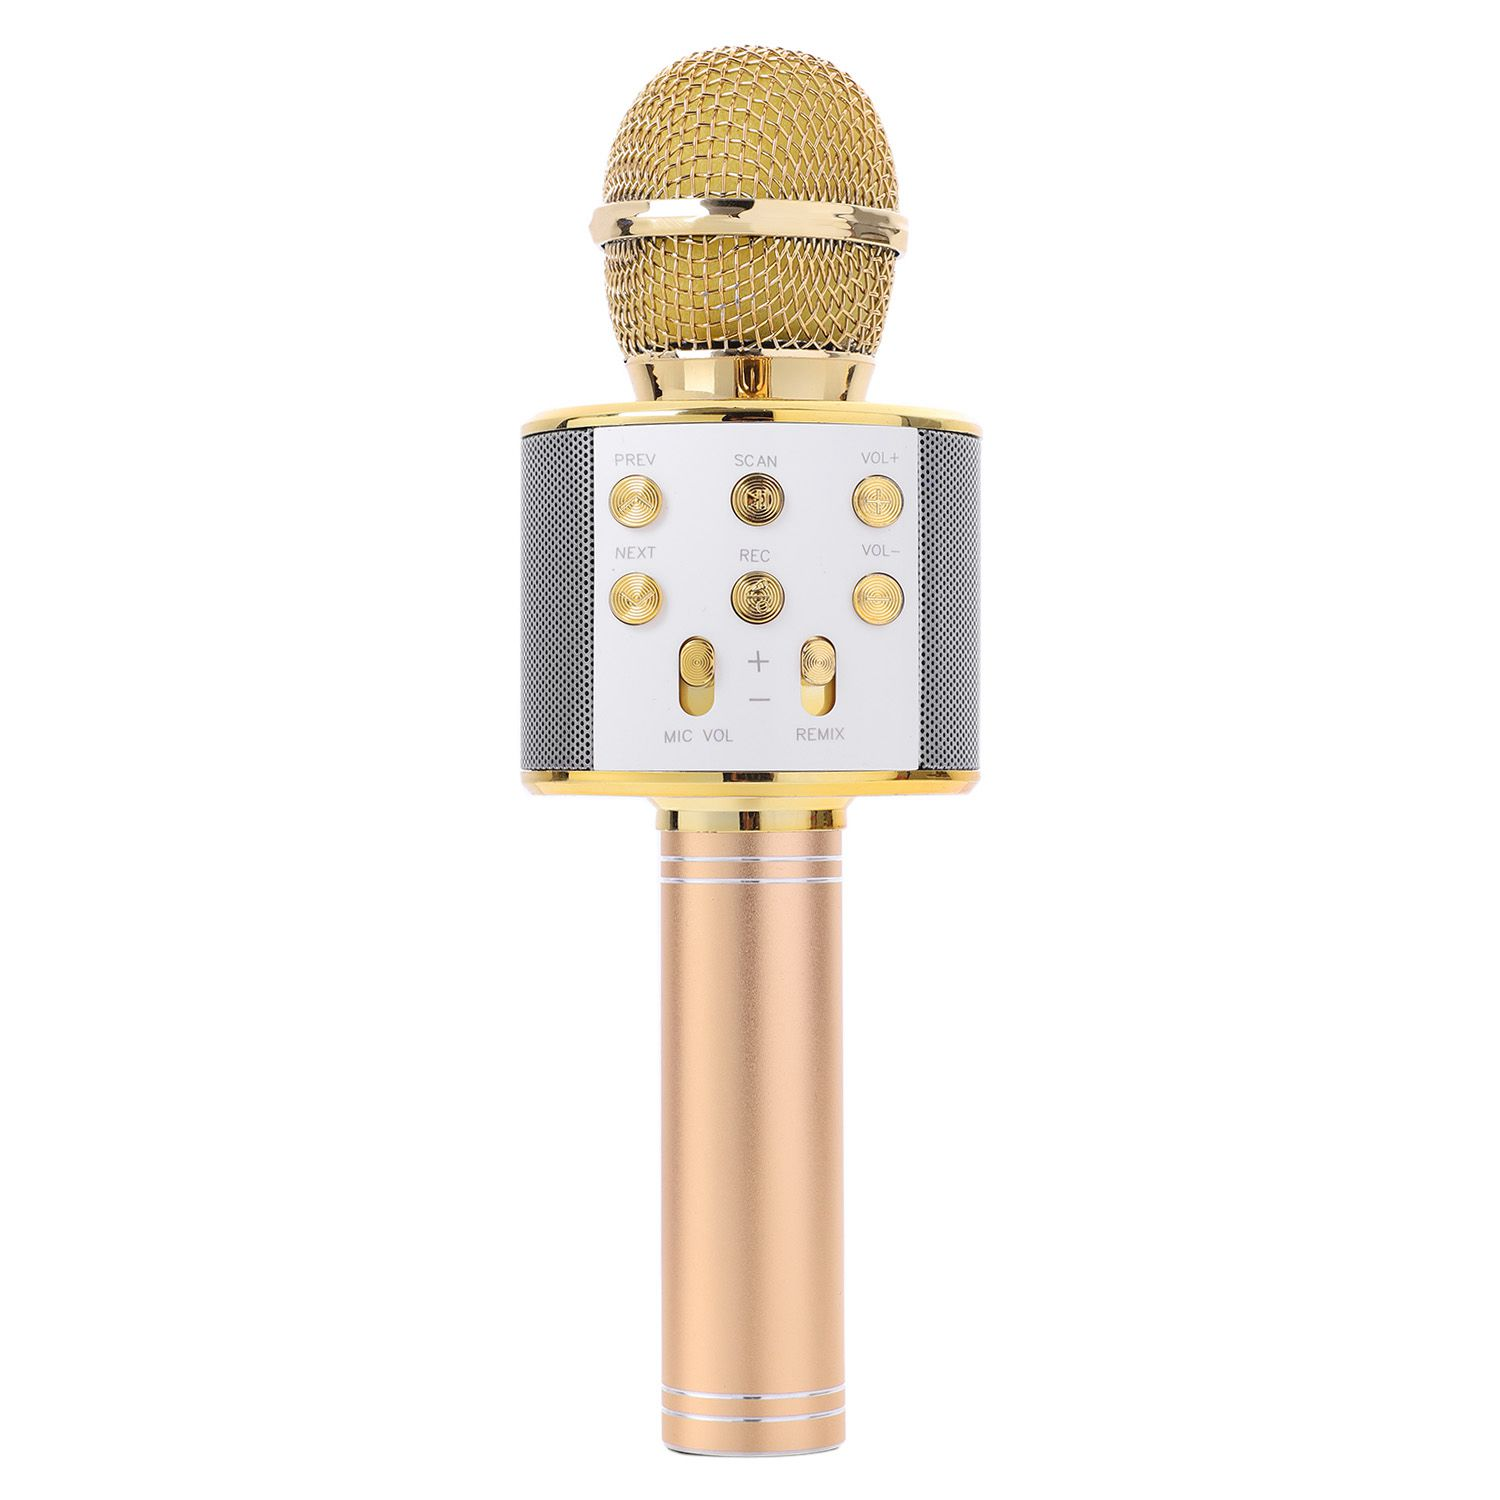 Handheld Bluetooth Wireless Karaoke Microphone Phone Player MIC Speaker Record Music KTV Microphone цена